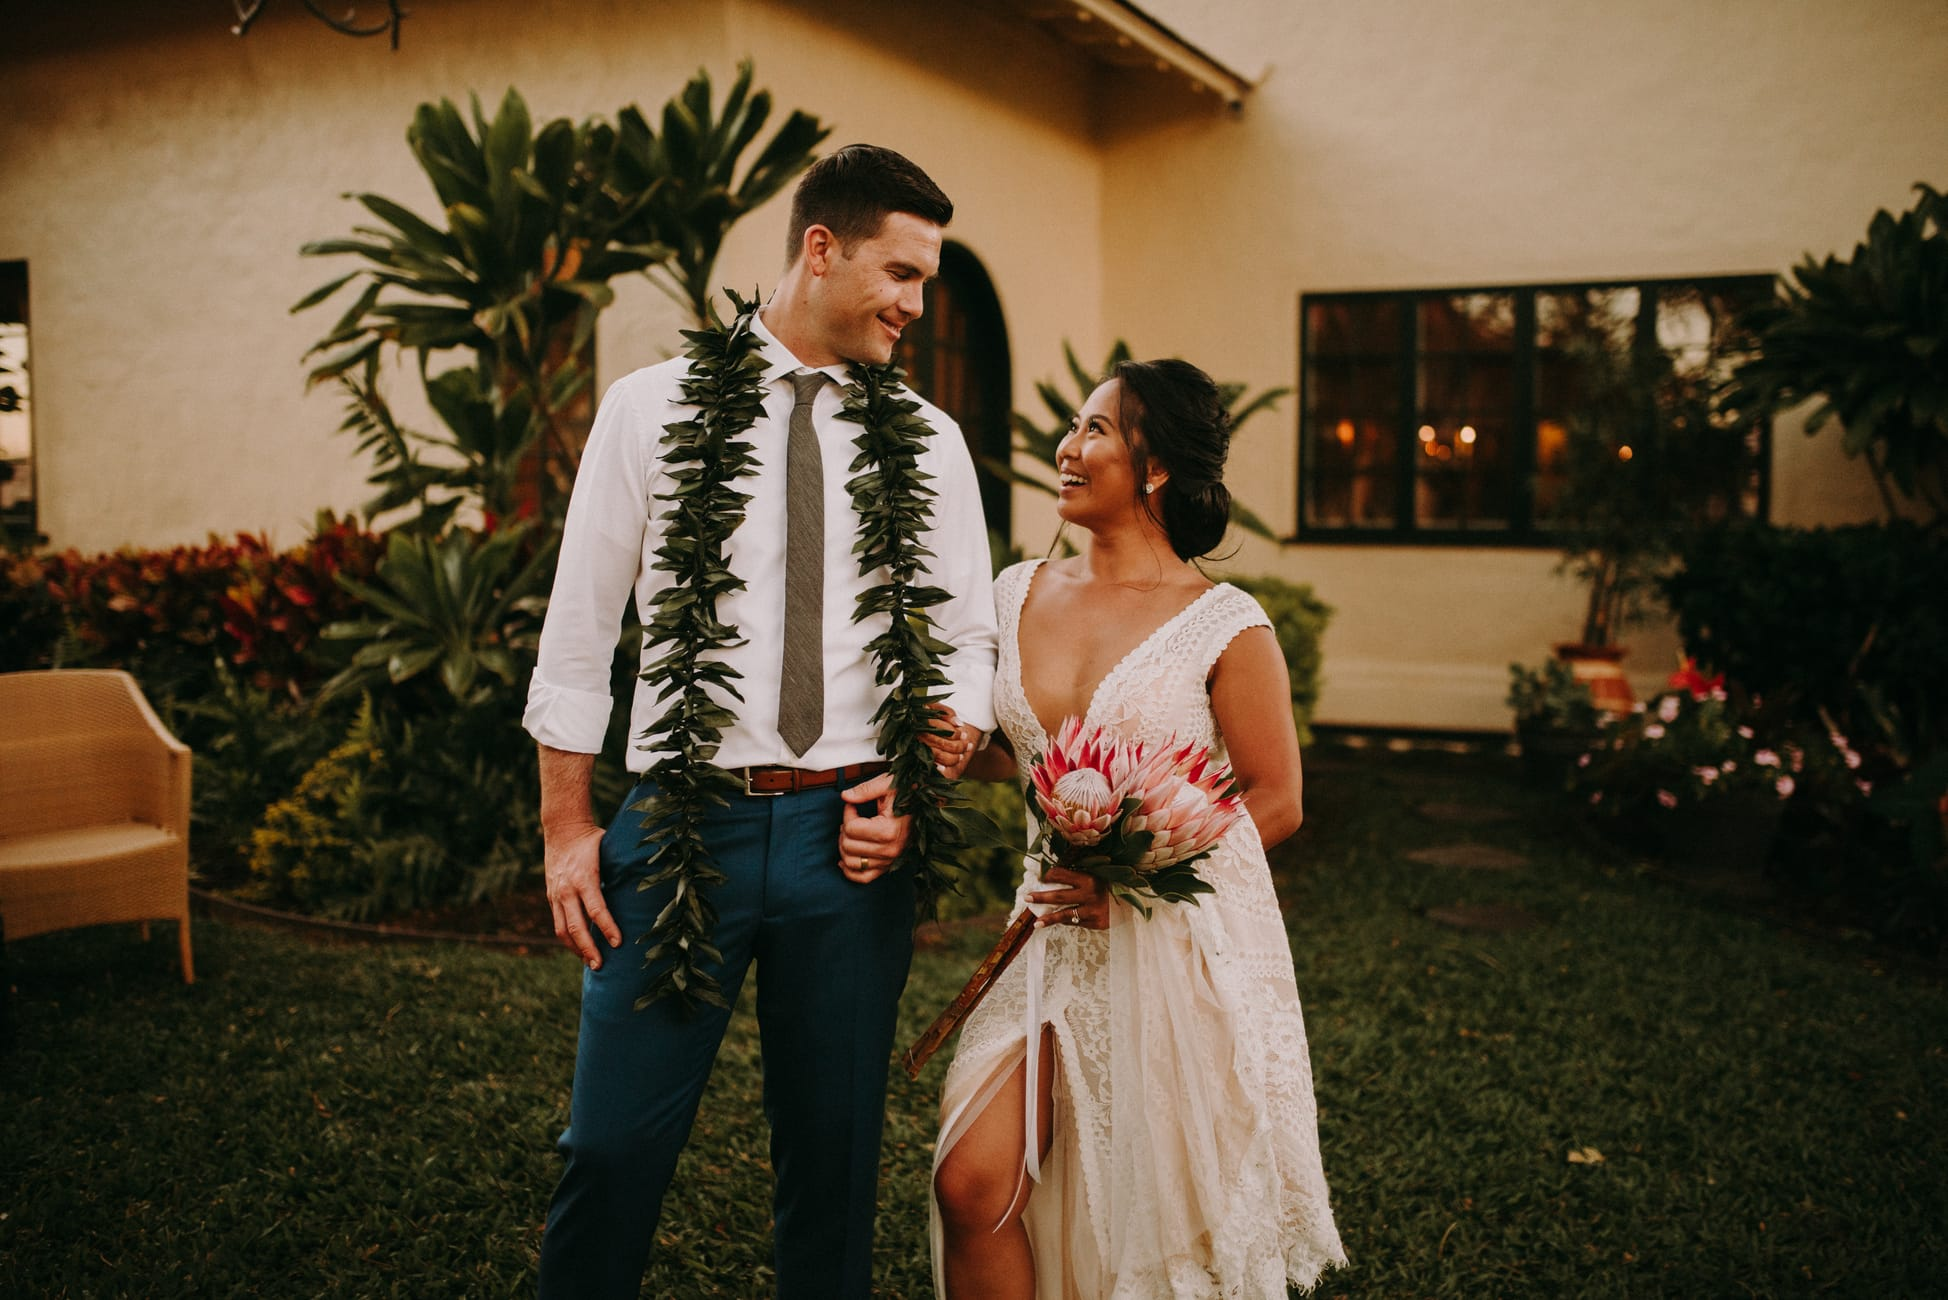 Kauai Wedding Photographer Rodrigo Moraes